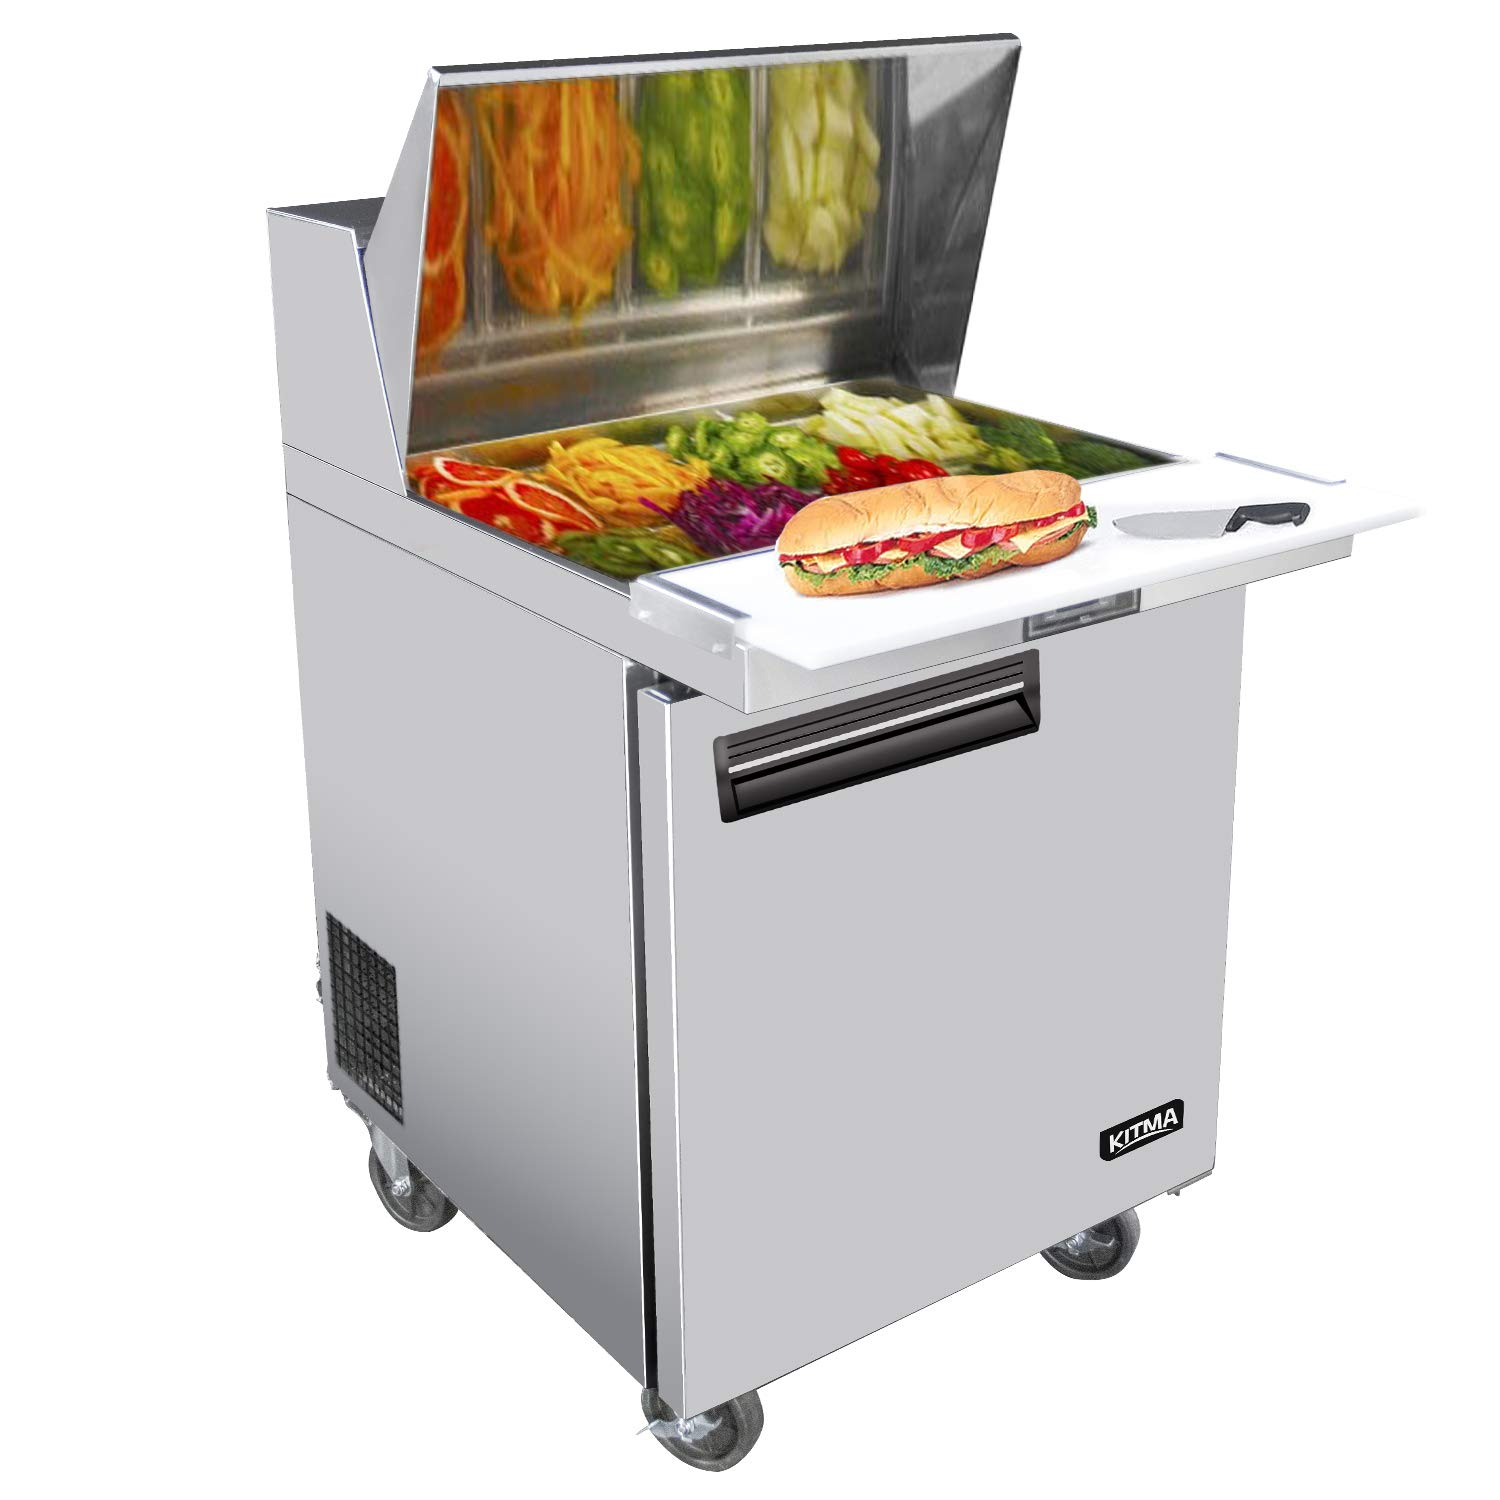 KITMA Single Door 28 Inches Sandwich Prep Cooler - 7.15 Cu. Ft Stainless Steel Salad Prep Station Table Refrigerator with Cutting Board and Pans, 33 °F - 38°F by KITMA